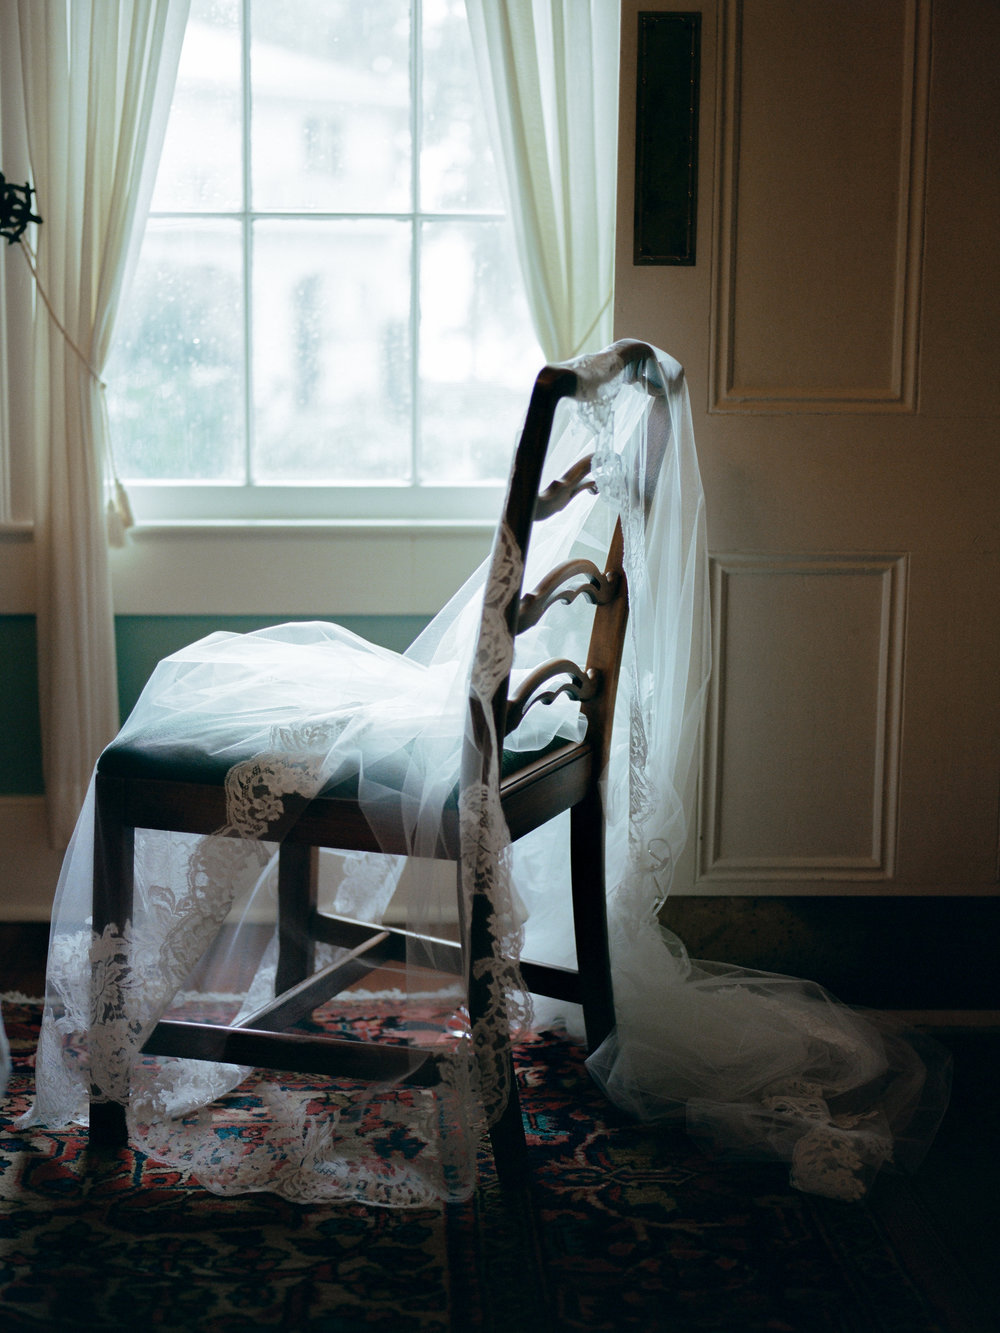 madison_and_jason_tallahassee_wedding_photographer_shannon_griffin_details-147.jpg